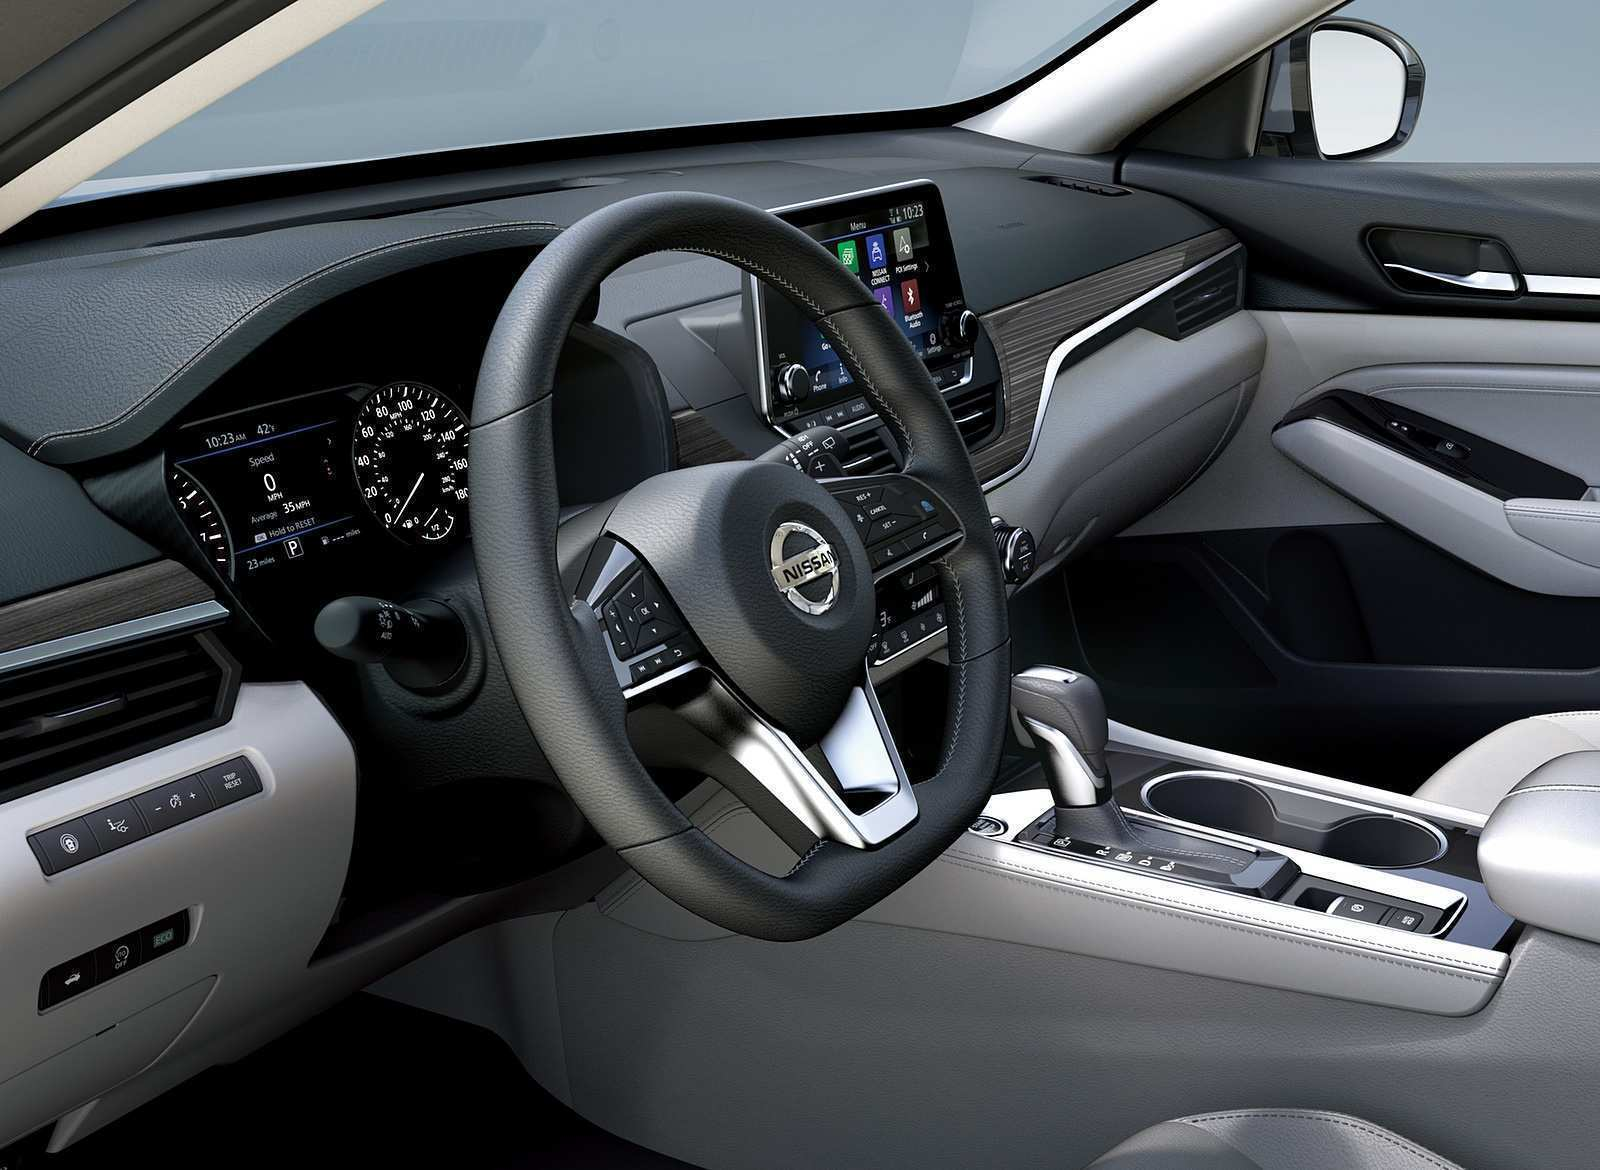 65 The Best 2019 Nissan Altima Interior Reviews